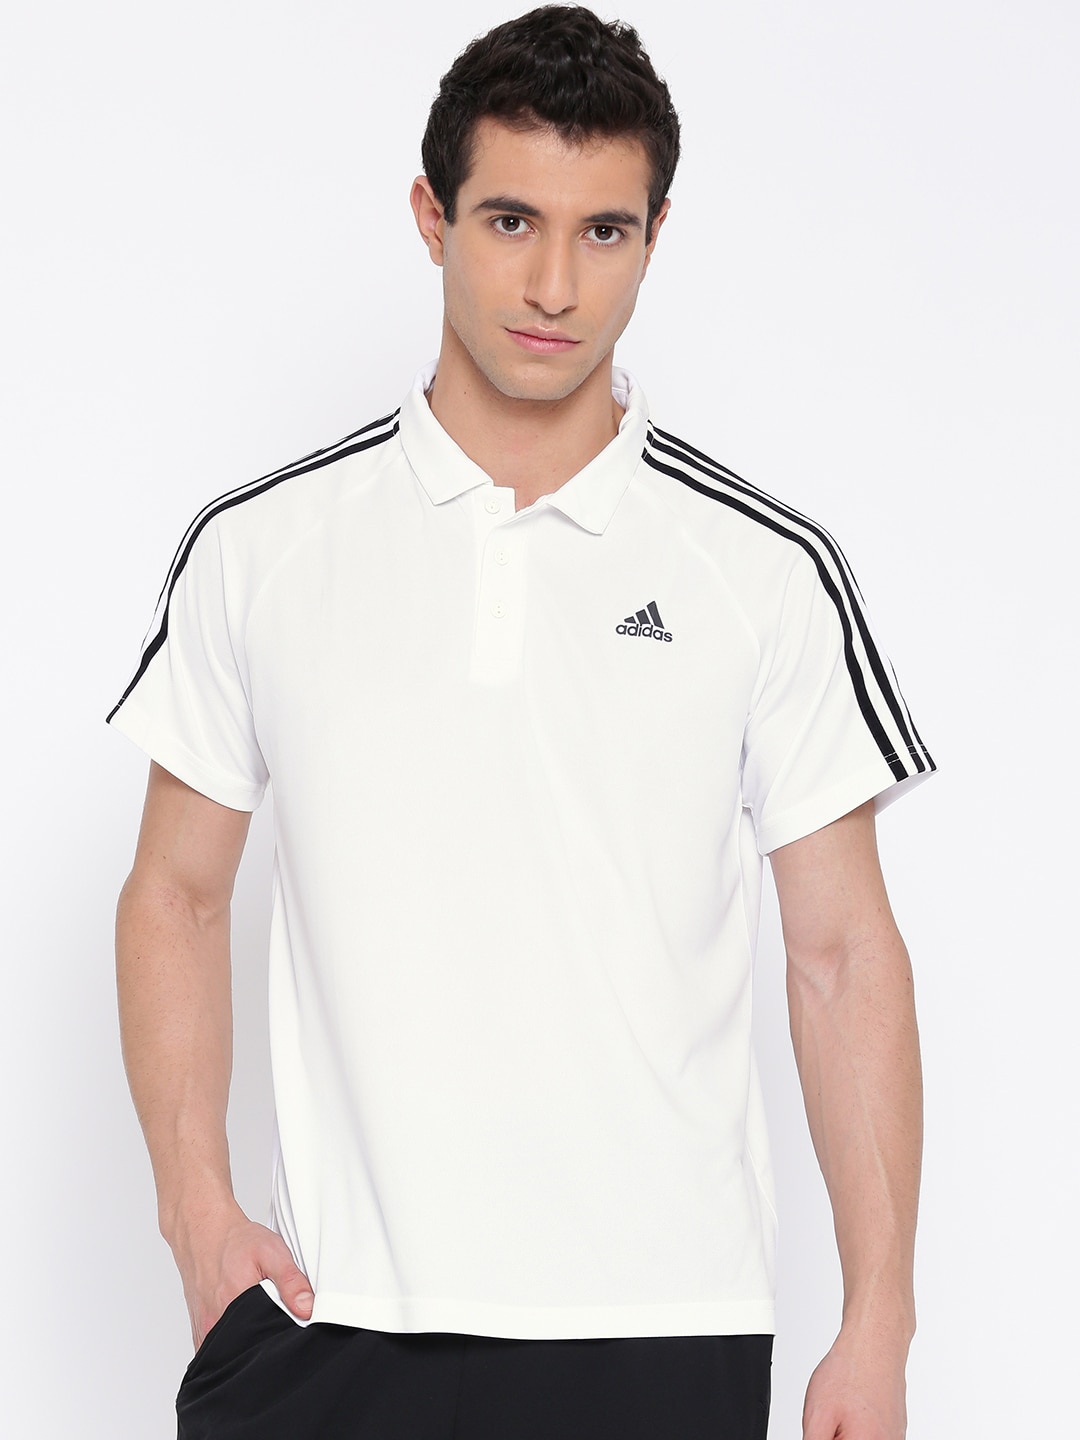 043c3057533 Adidas T-Shirts - Buy Adidas Tshirts Online in India